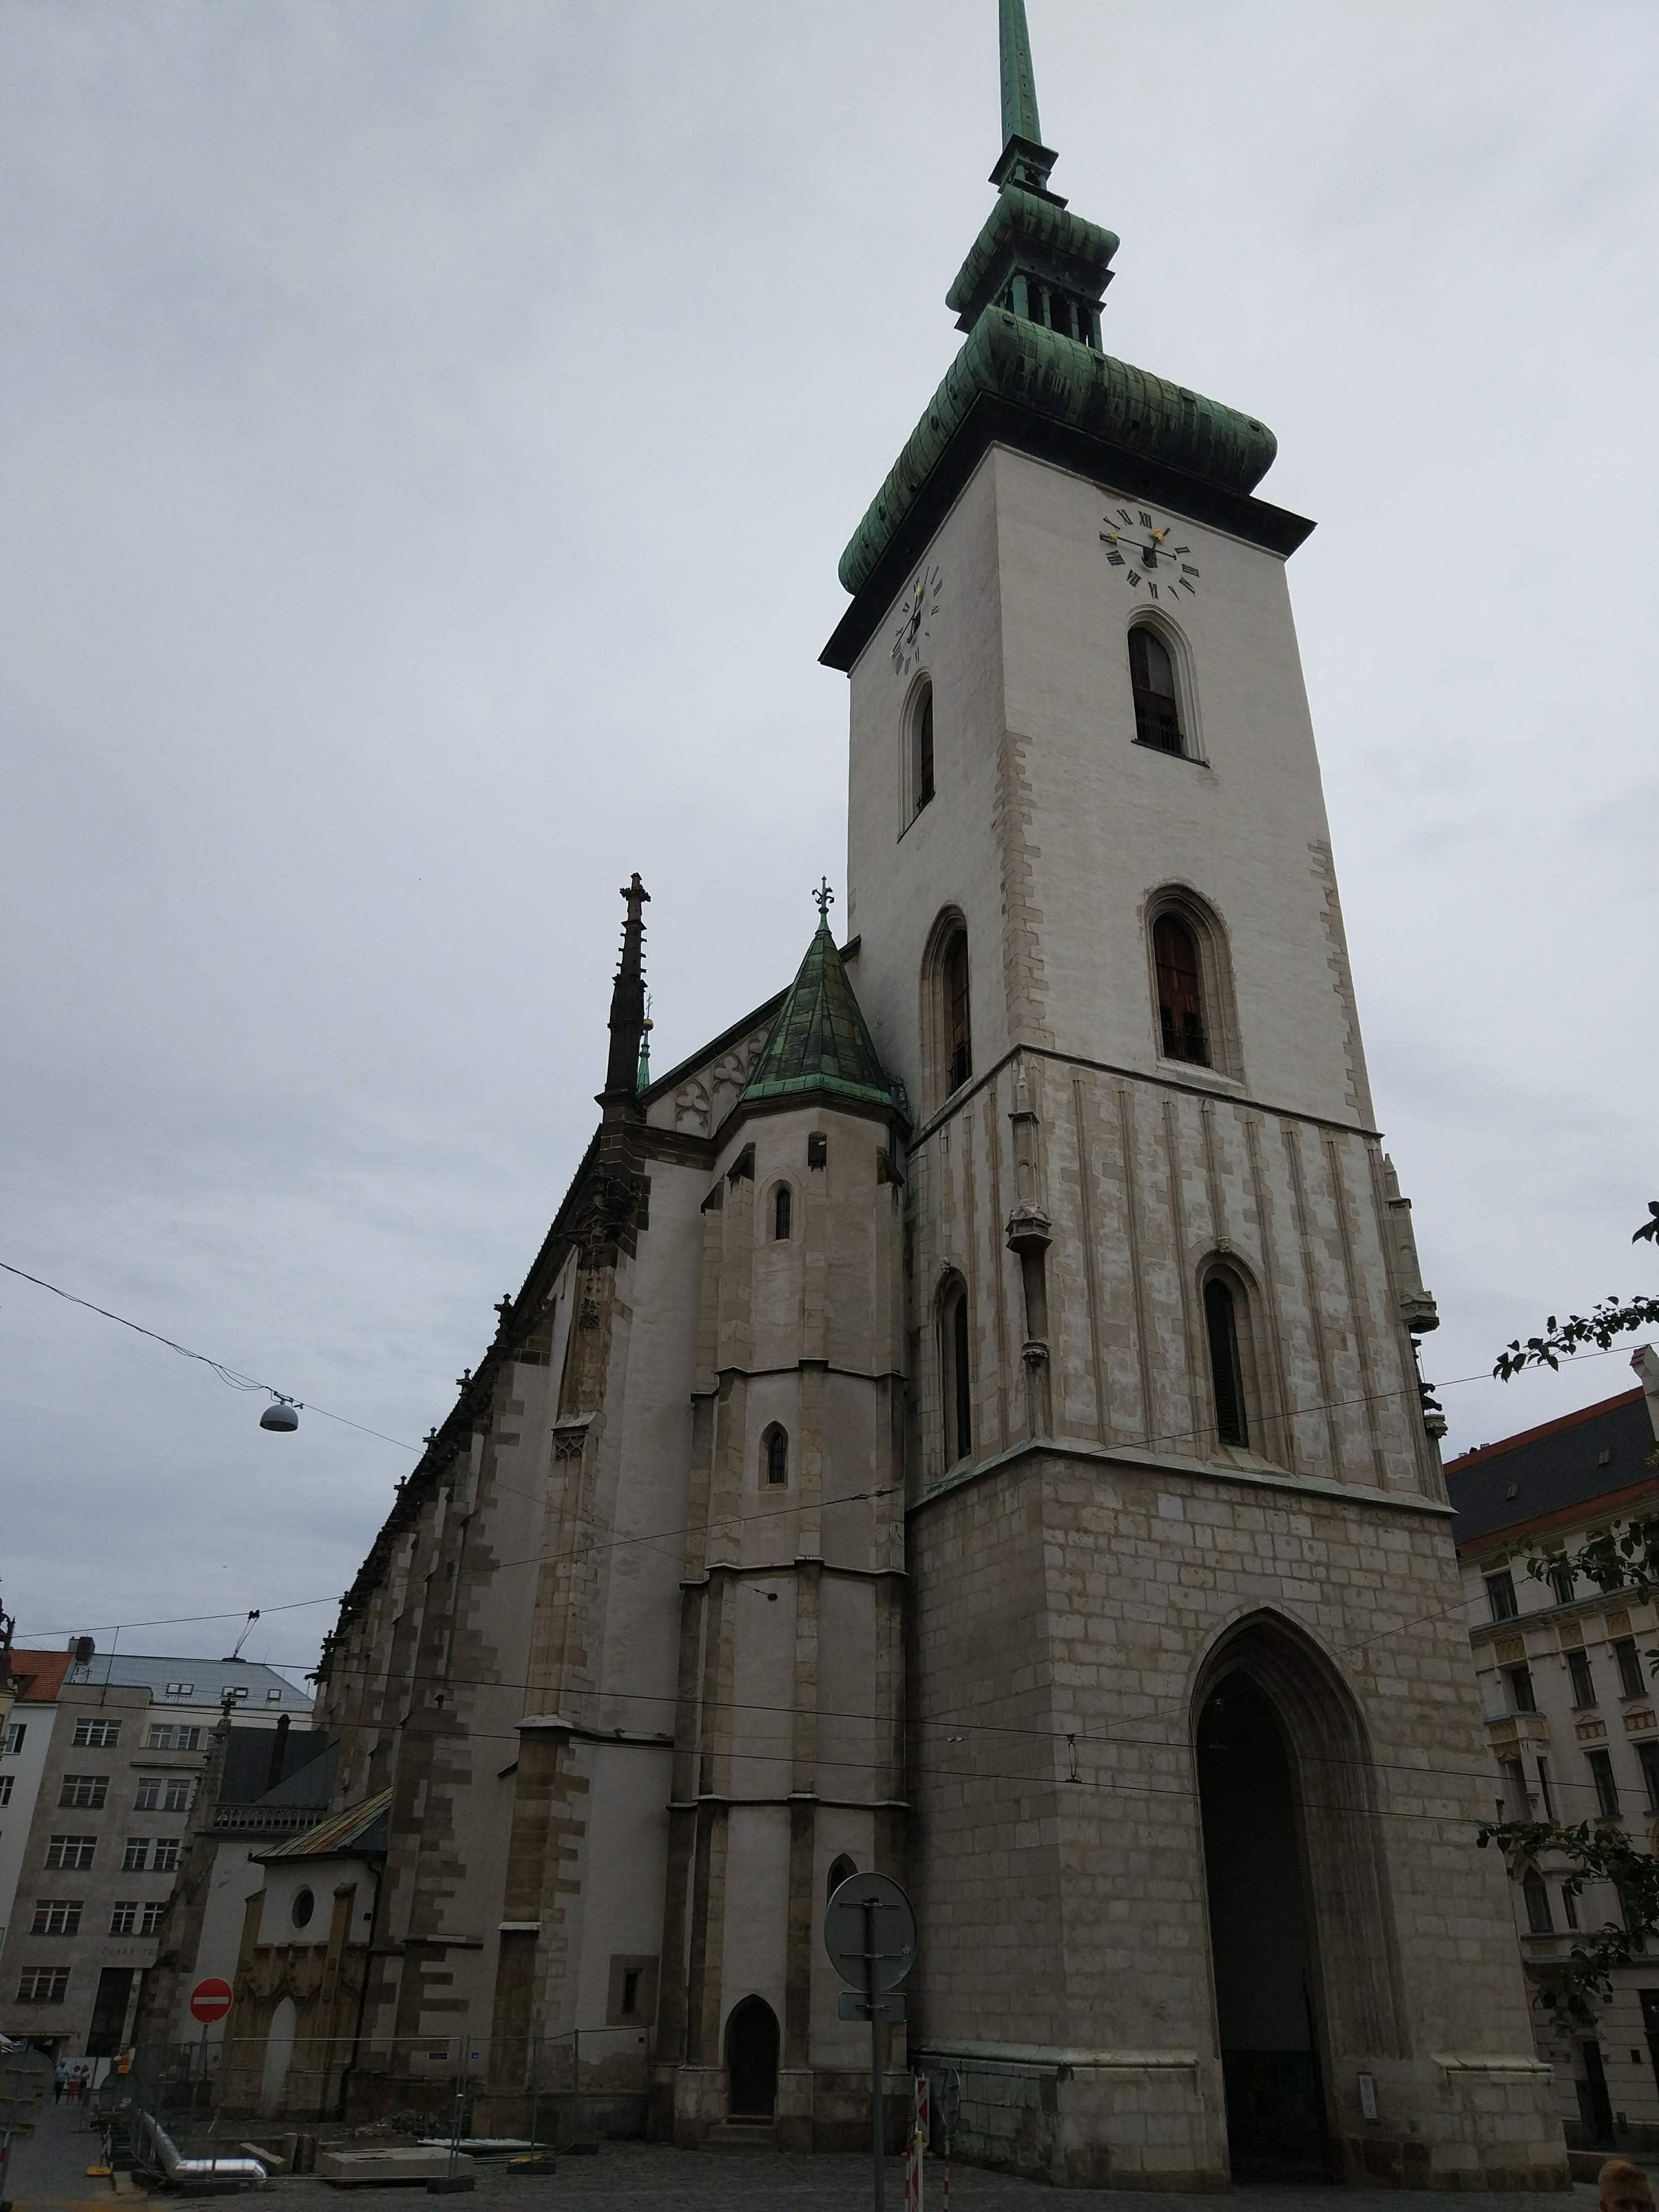 Church of St. James - a church with history spanning back to the 13th century